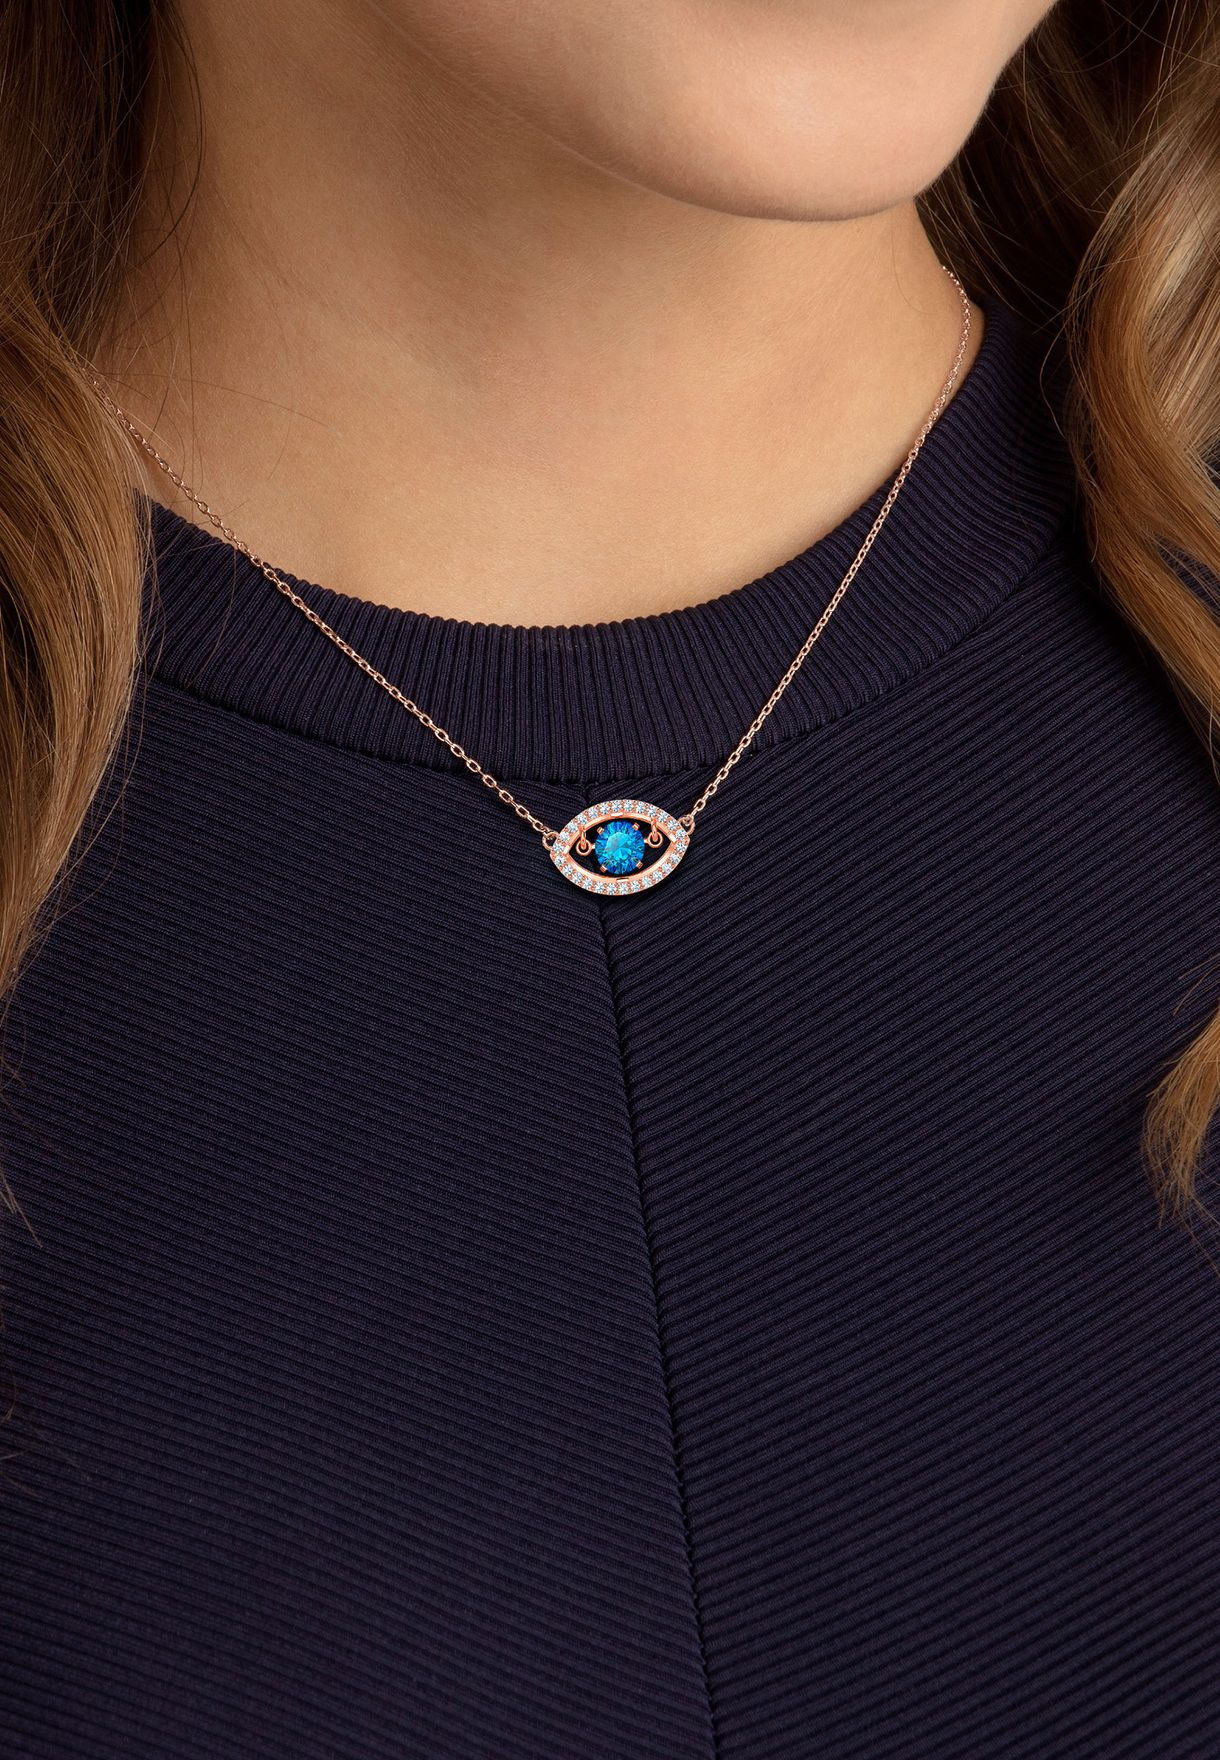 Luckily Evil Eye Necklace